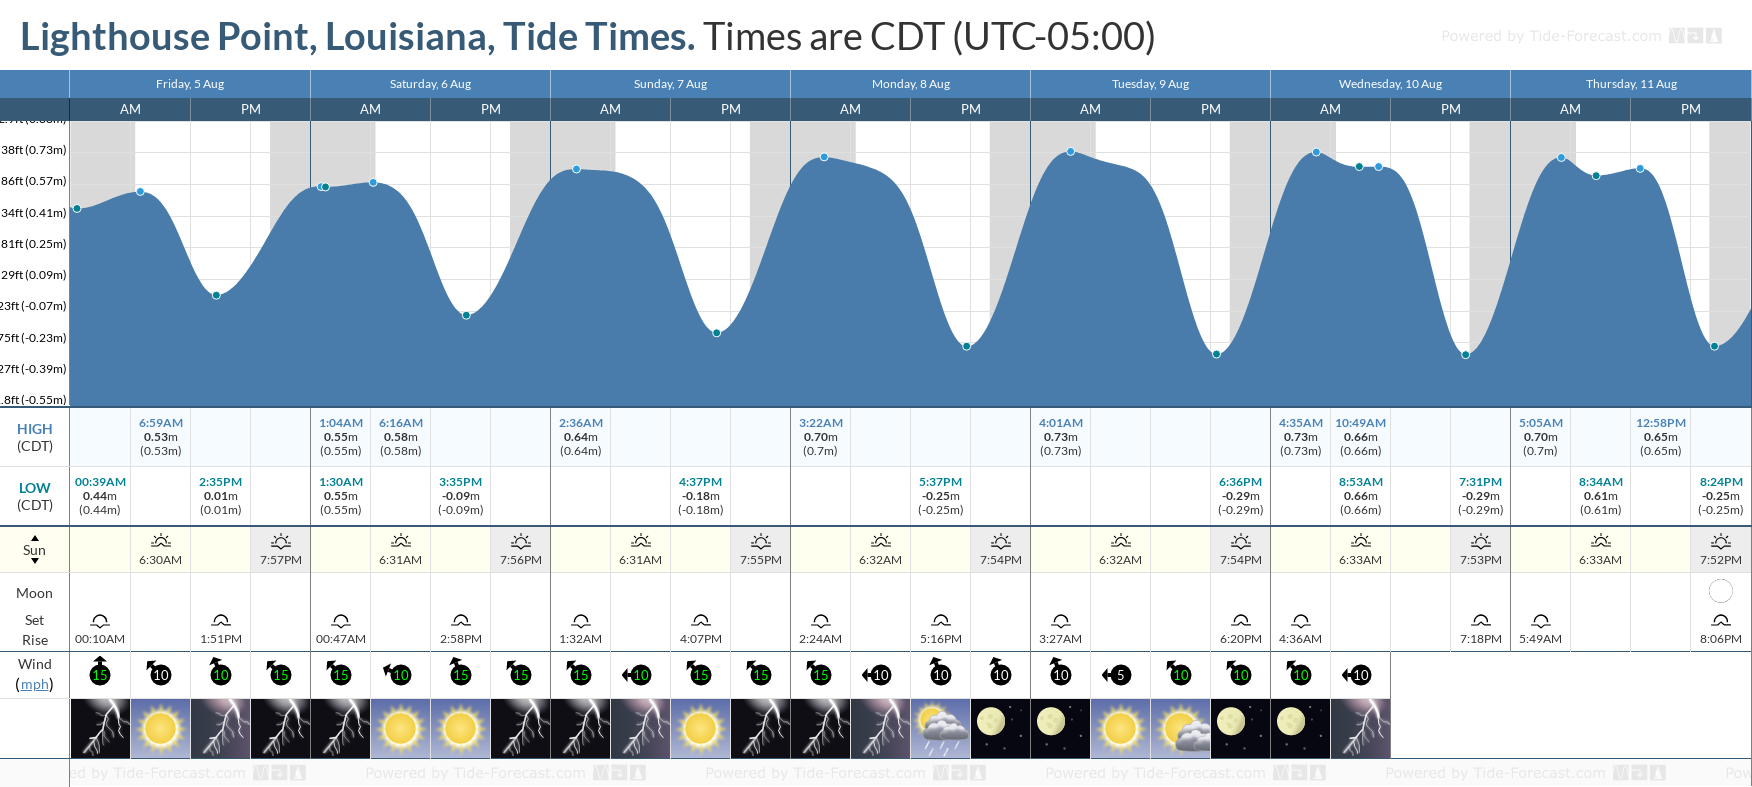 Lighthouse Point, Louisiana Tide Chart including high and low tide tide times for the next 7 days